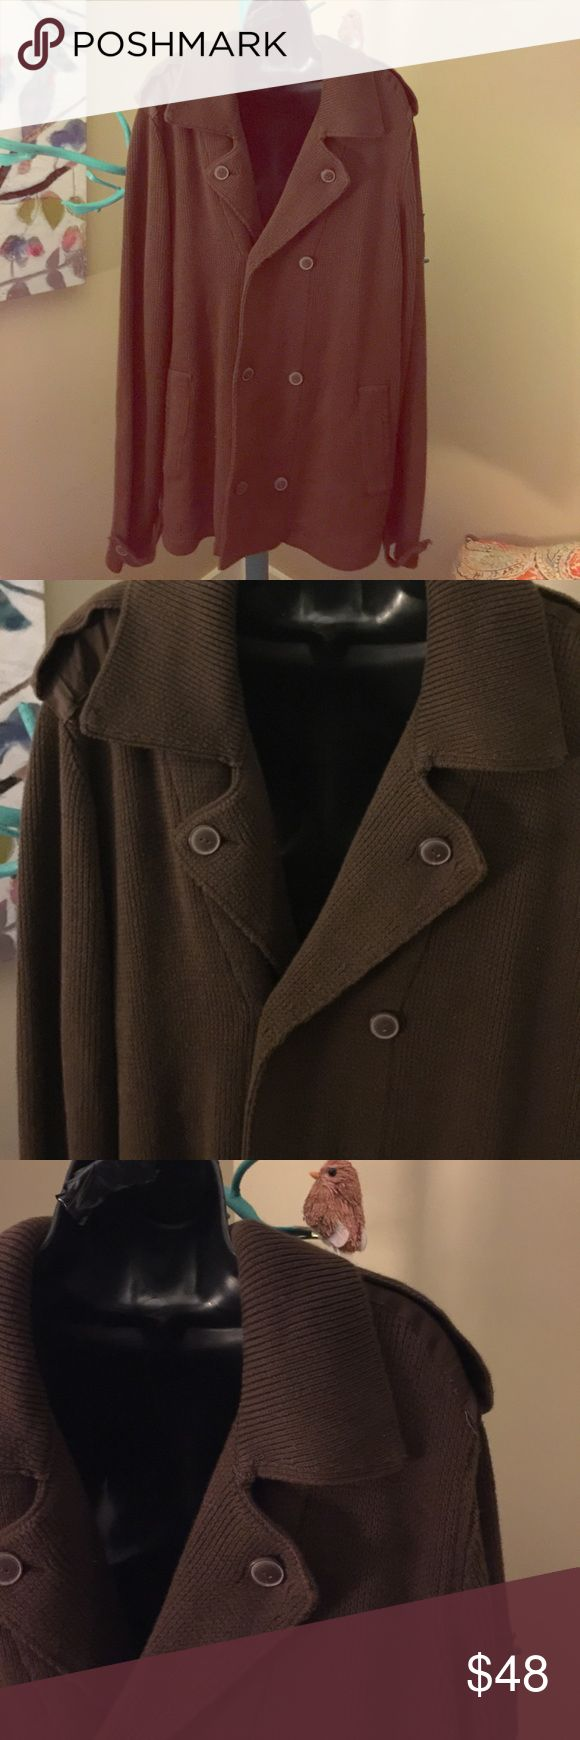 ⬇️Reduced⬇️  EUC, Guess, XXL EUC, Guess, XXL, brown, double-breasted, cardigan Guess Sweaters Cardigan